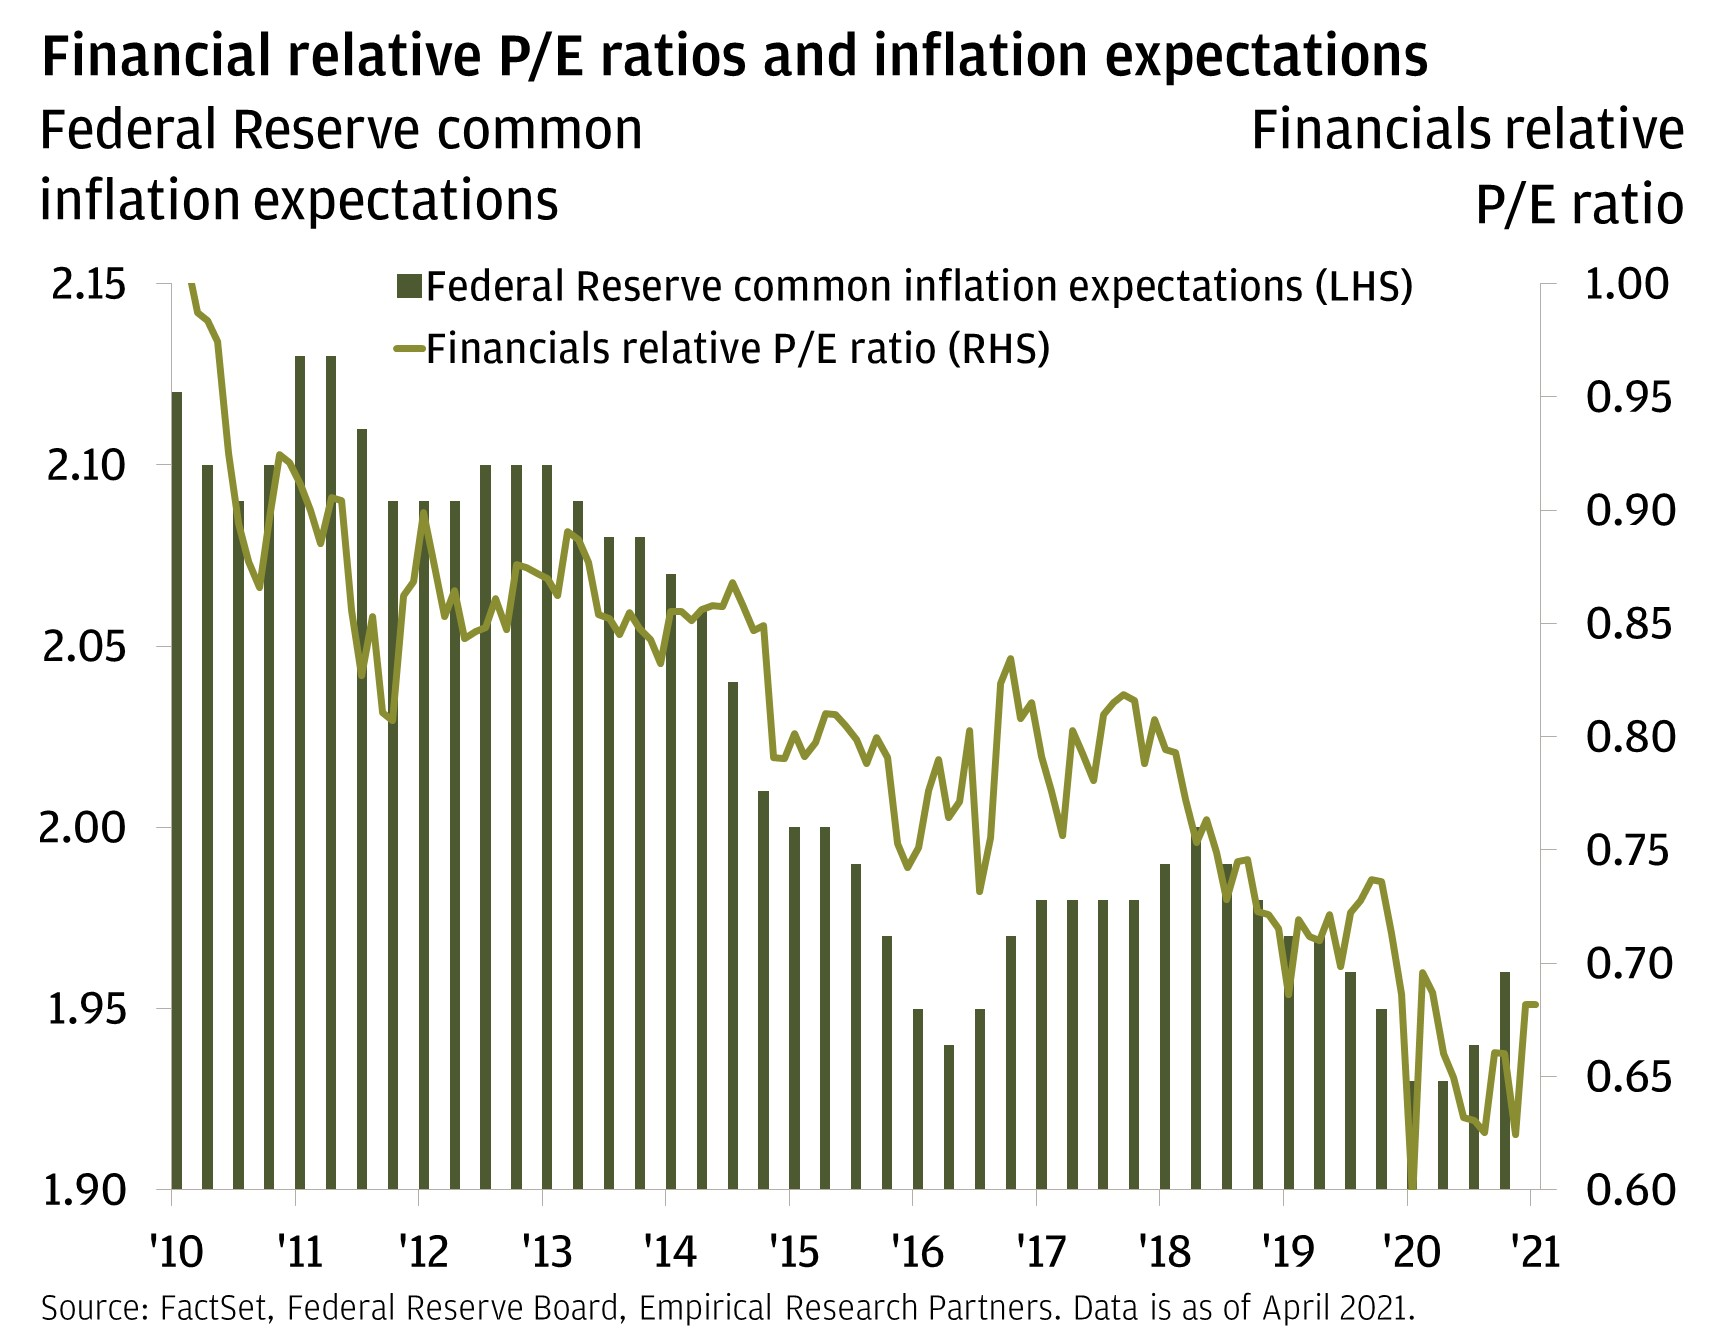 This chart shows the inflation expectations of the U.S. Federal Reserve and the relative price-to-earnings (P/E) ratio of financials stocks from 2010 through April 2021. The charts shows both the Federal Reserve common inflation expectations and the financials relative P/E ratio steadily decreased from 2010 until 2016. In 2016, Federal Reserve inflation expectations began to move slight higher before plateauing until 2018. The financials relative P/E ratio also stopped declining in 2016 and plateaued until 2018. In 2018, both datasets resumed falling until early 2020. Federal Reserve inflation expectations climbed higher from its low point in early 2020, and have continued to climb higher with the most recent available data. Financials relative P/E ratios remain low relative to their history since 2010, but they have bounced off of their lows in early 2020.